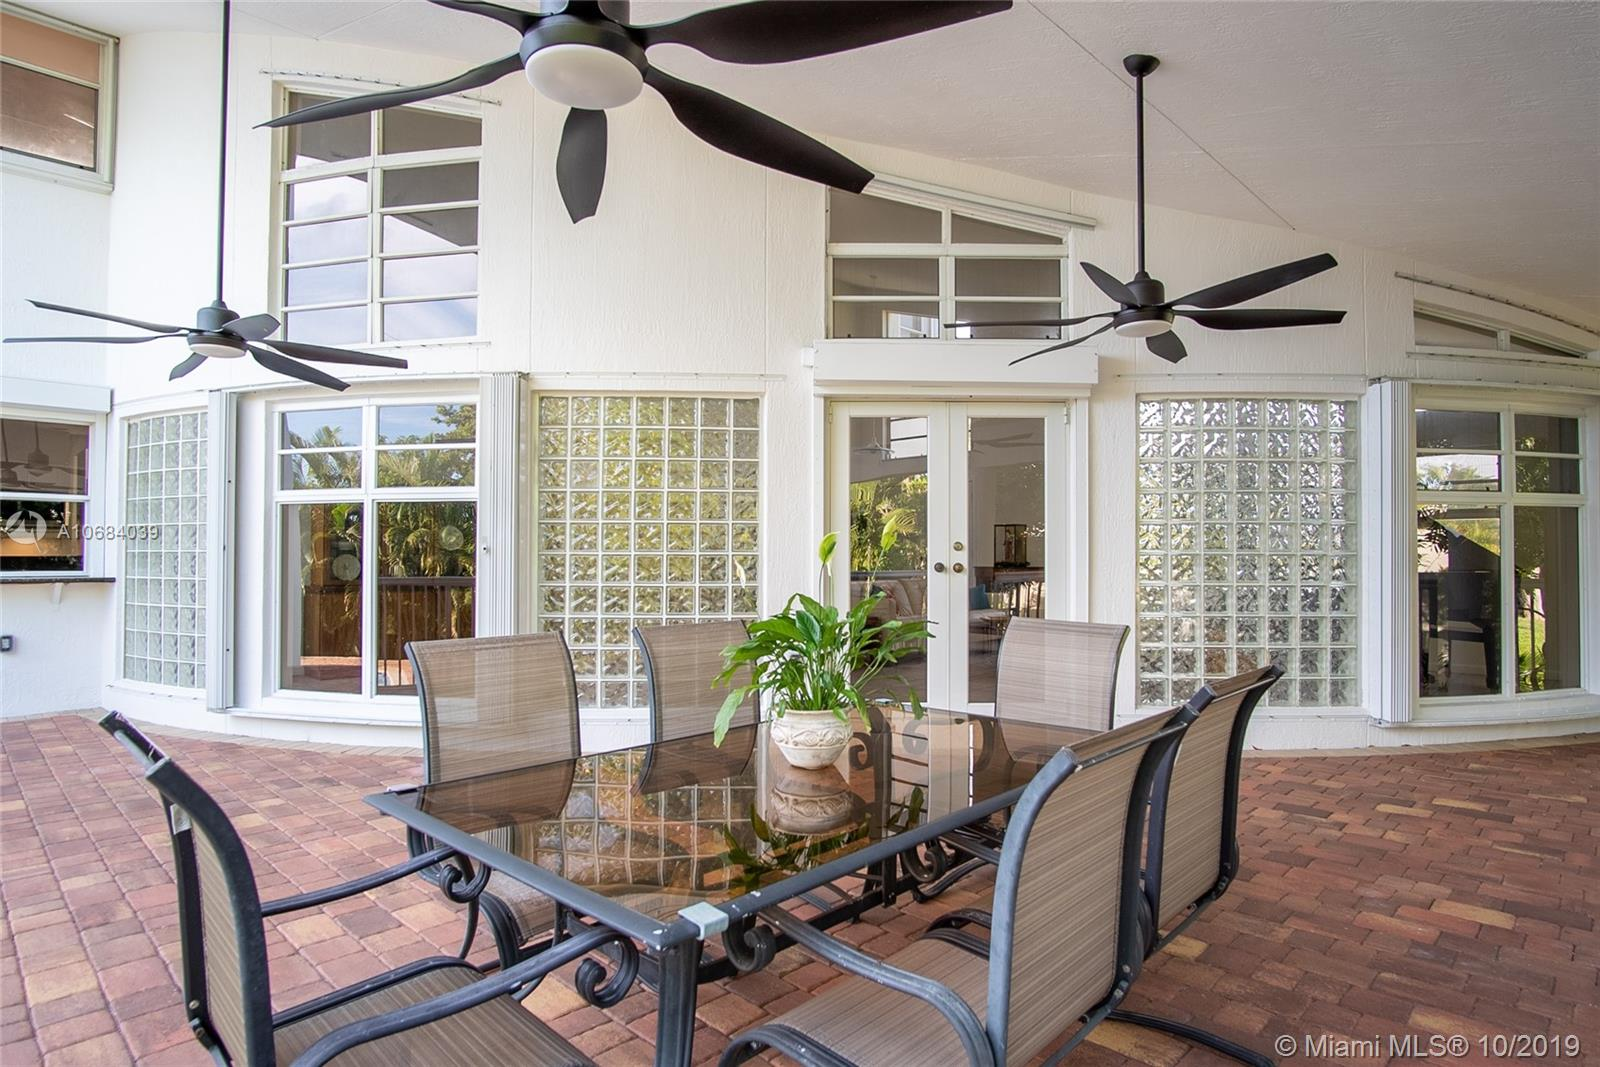 6320 Dolphin Dr, Kendall, Florida